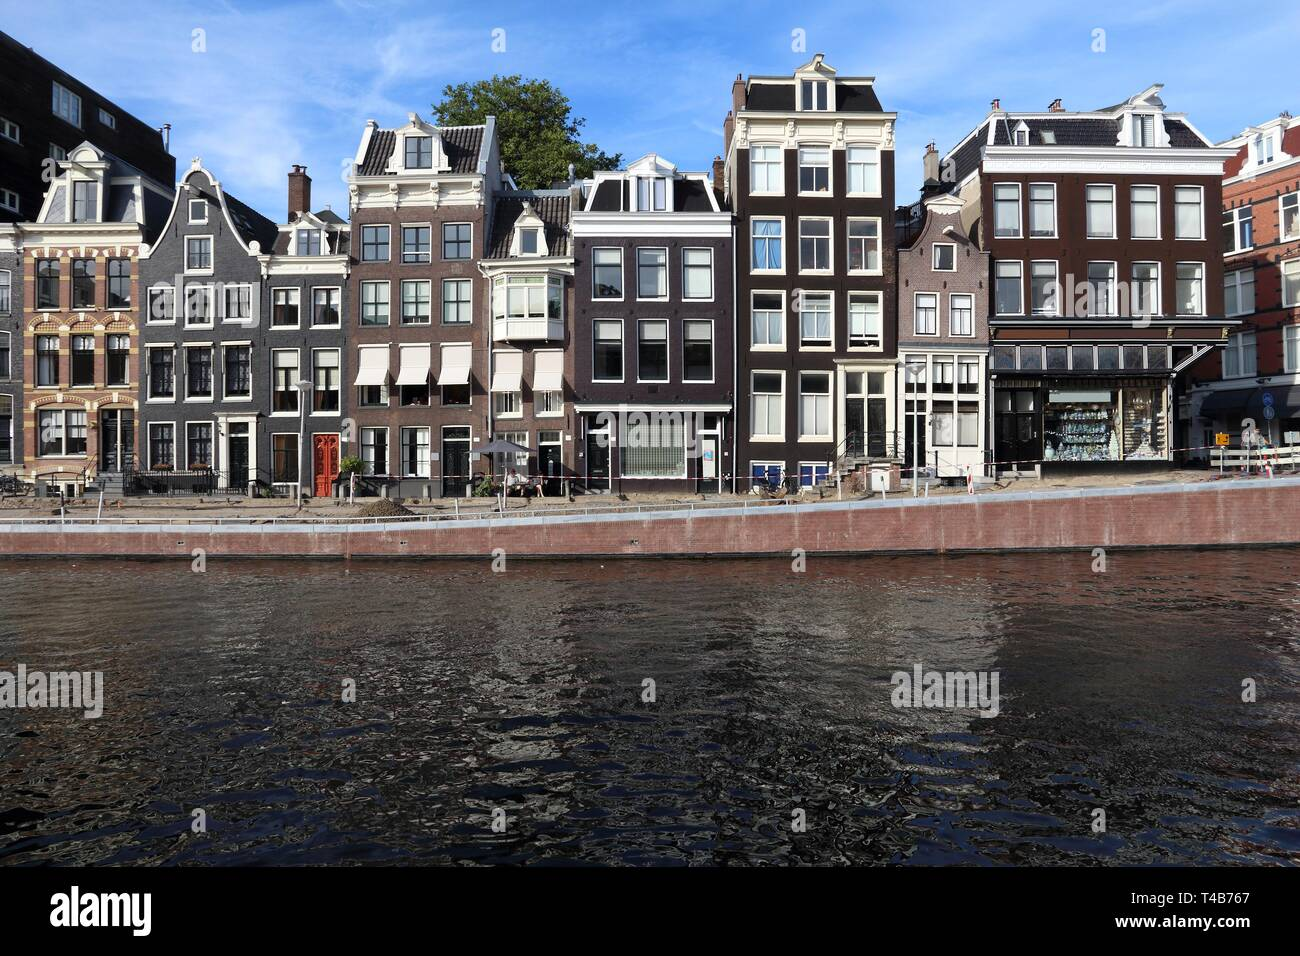 Amsterdam canal architecture - Prinsengracht canal rowhouses in De Wallen district. - Stock Image